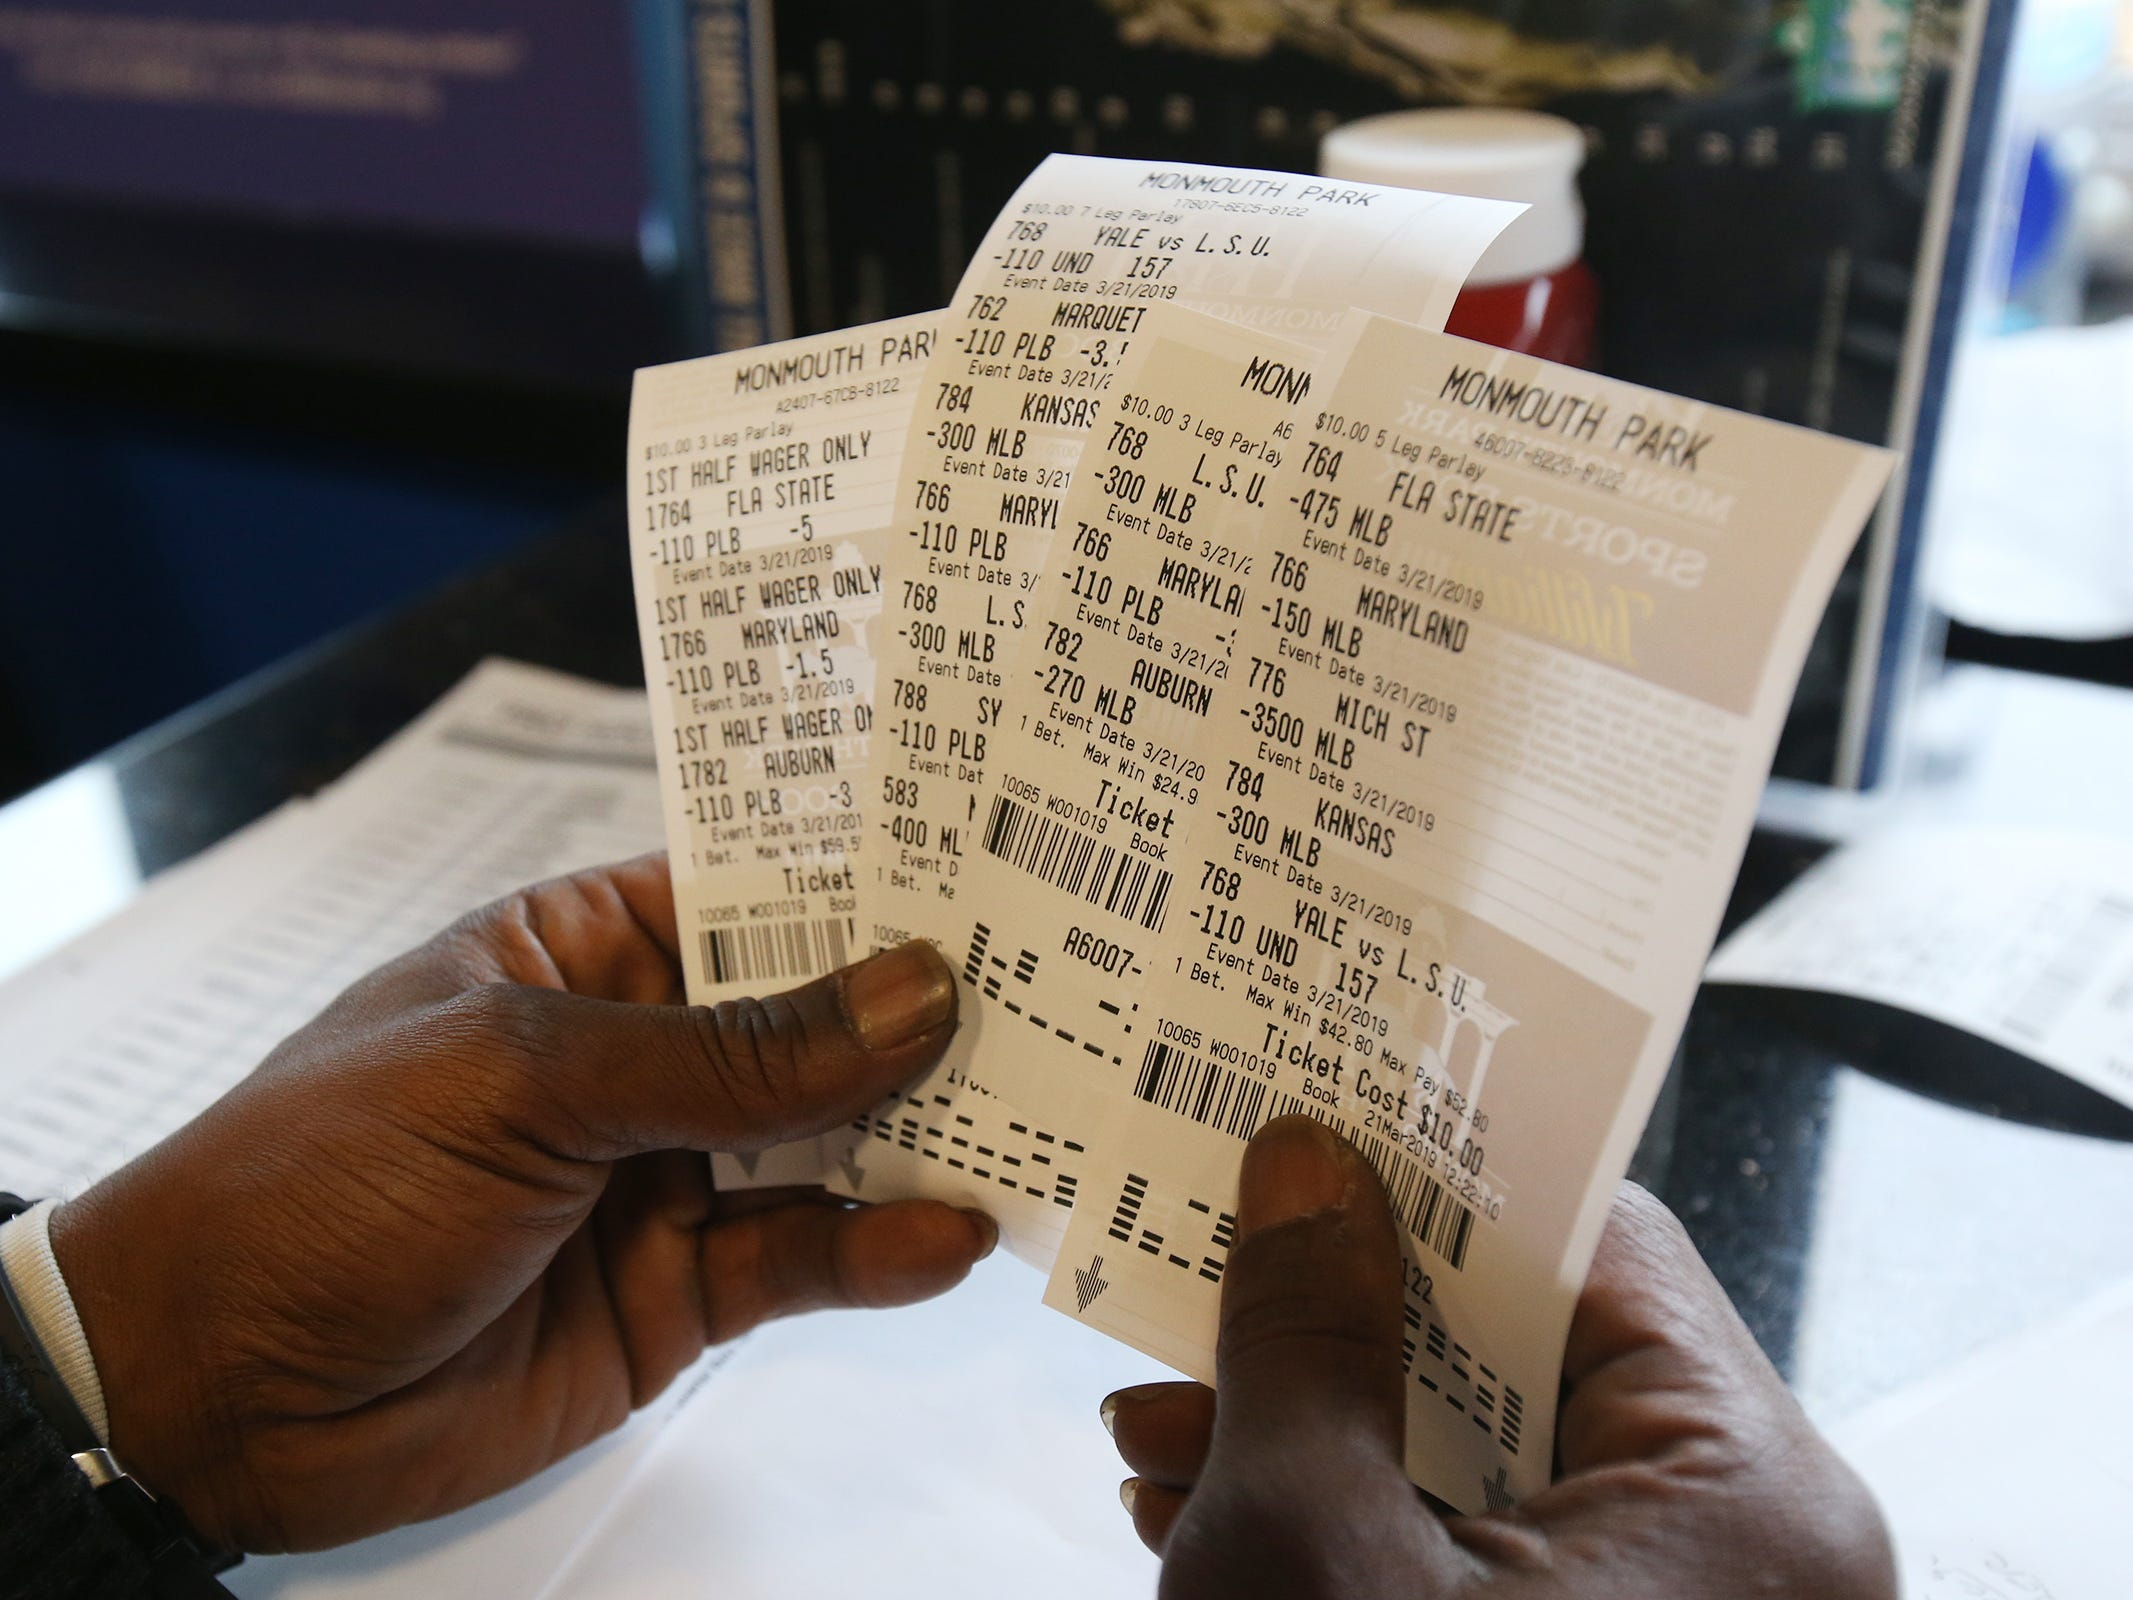 Charlie Rogers of Aberbeen, a former NFL player, displays his betting slips during March Madness, the NCAA men's college basketball tournament, at Monmouth Park's William Hill Race and Sports Bar in Oceanport, NJ Thursday March 21, 2019.